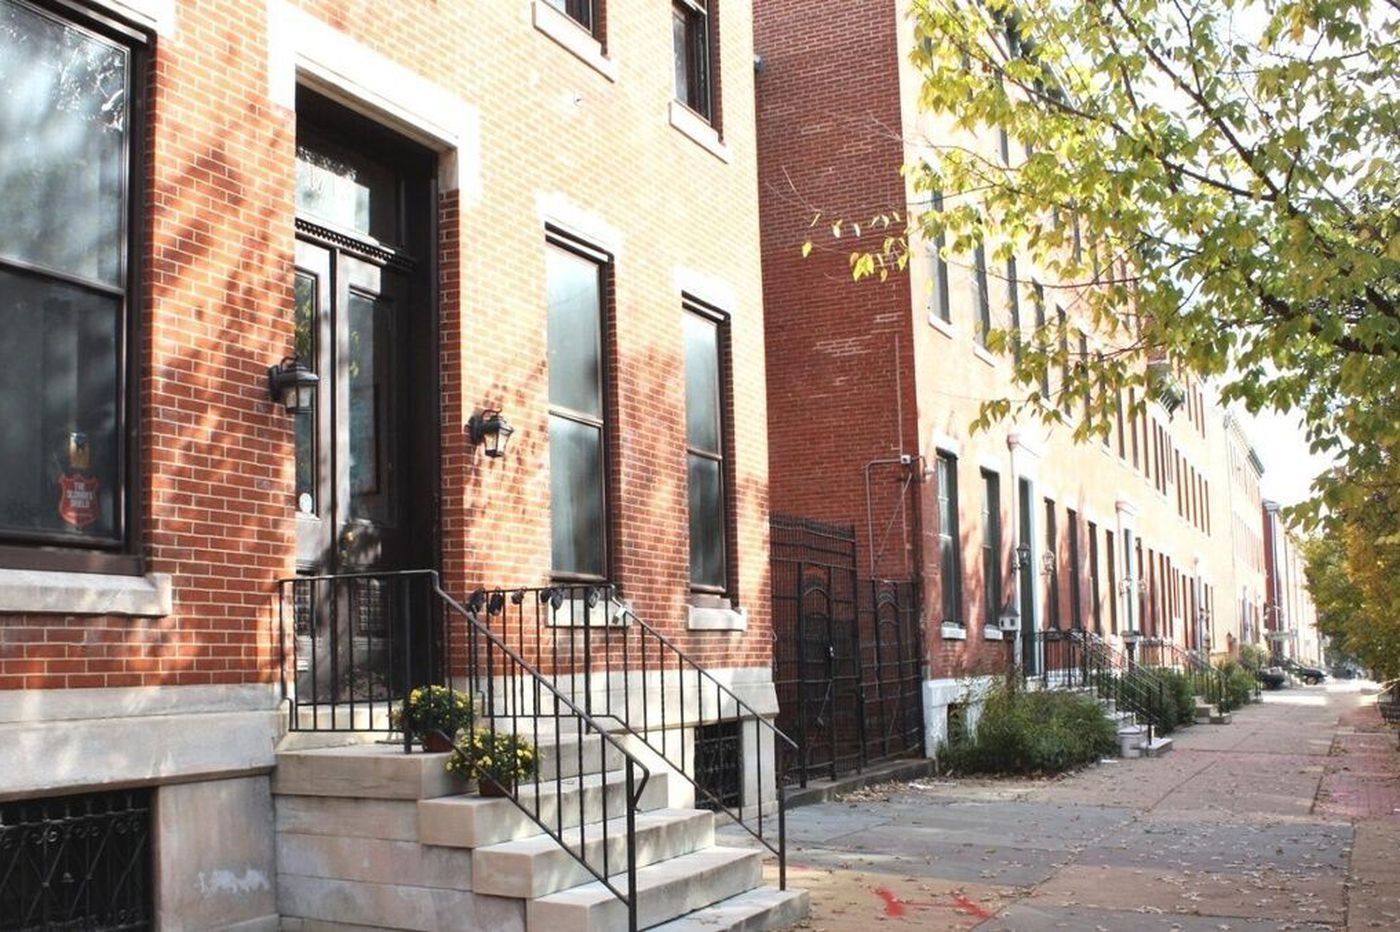 On the market: Updated condo in Philly's walkable Fairmount neighborhood for $269,000